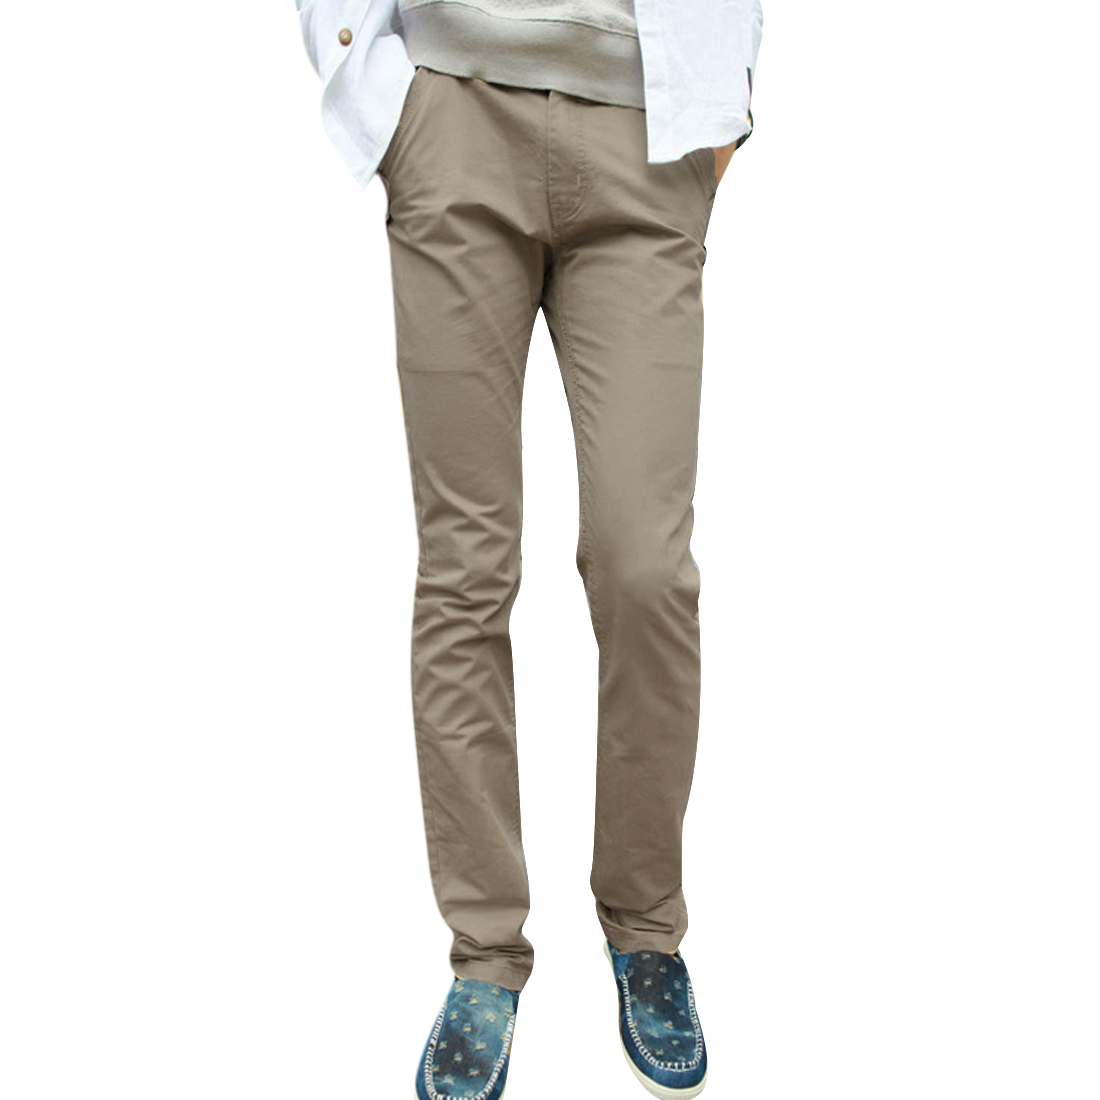 Mens NEW Fashion Zipper Fly Hip Pockets Design Dark Beige Pants W33